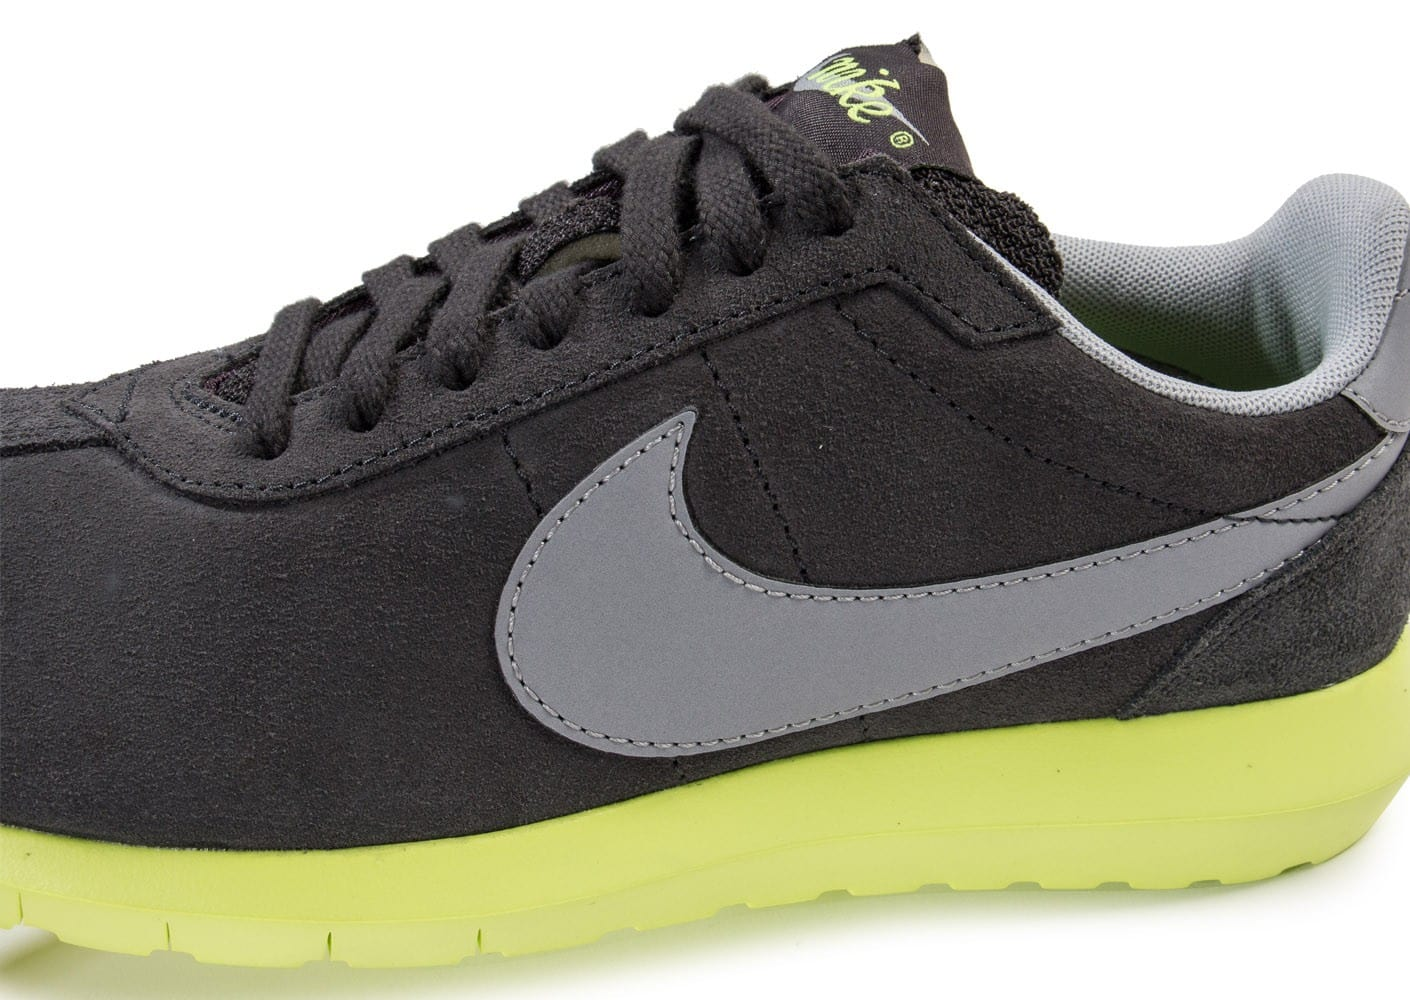 new arrival 4ac00 2932b Roshe Grise Suede Baskets Ld Chausport Nike 1000 Chaussures Homme gOFxnqR